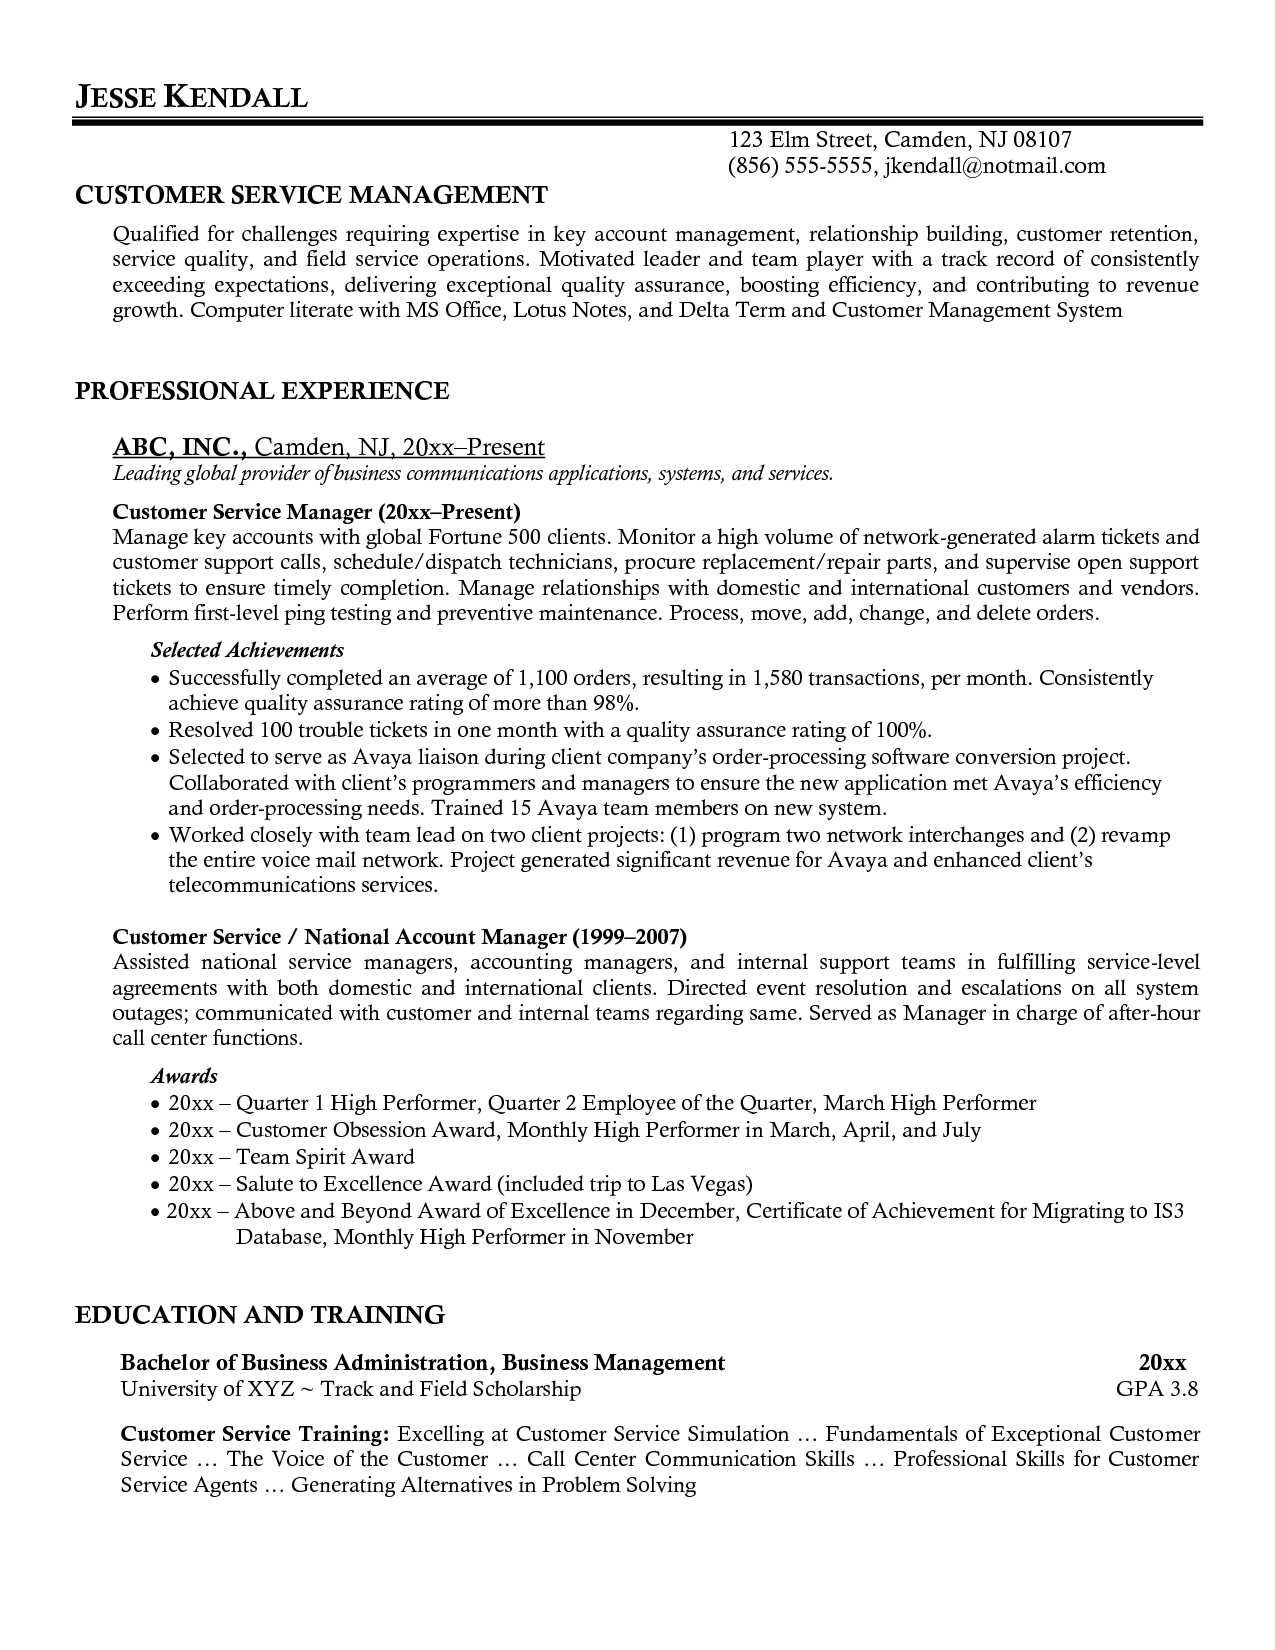 Certified Professional Resume Writers Canada Executive Application Letter  For Ojt Accounting Students With Executive Resume Service